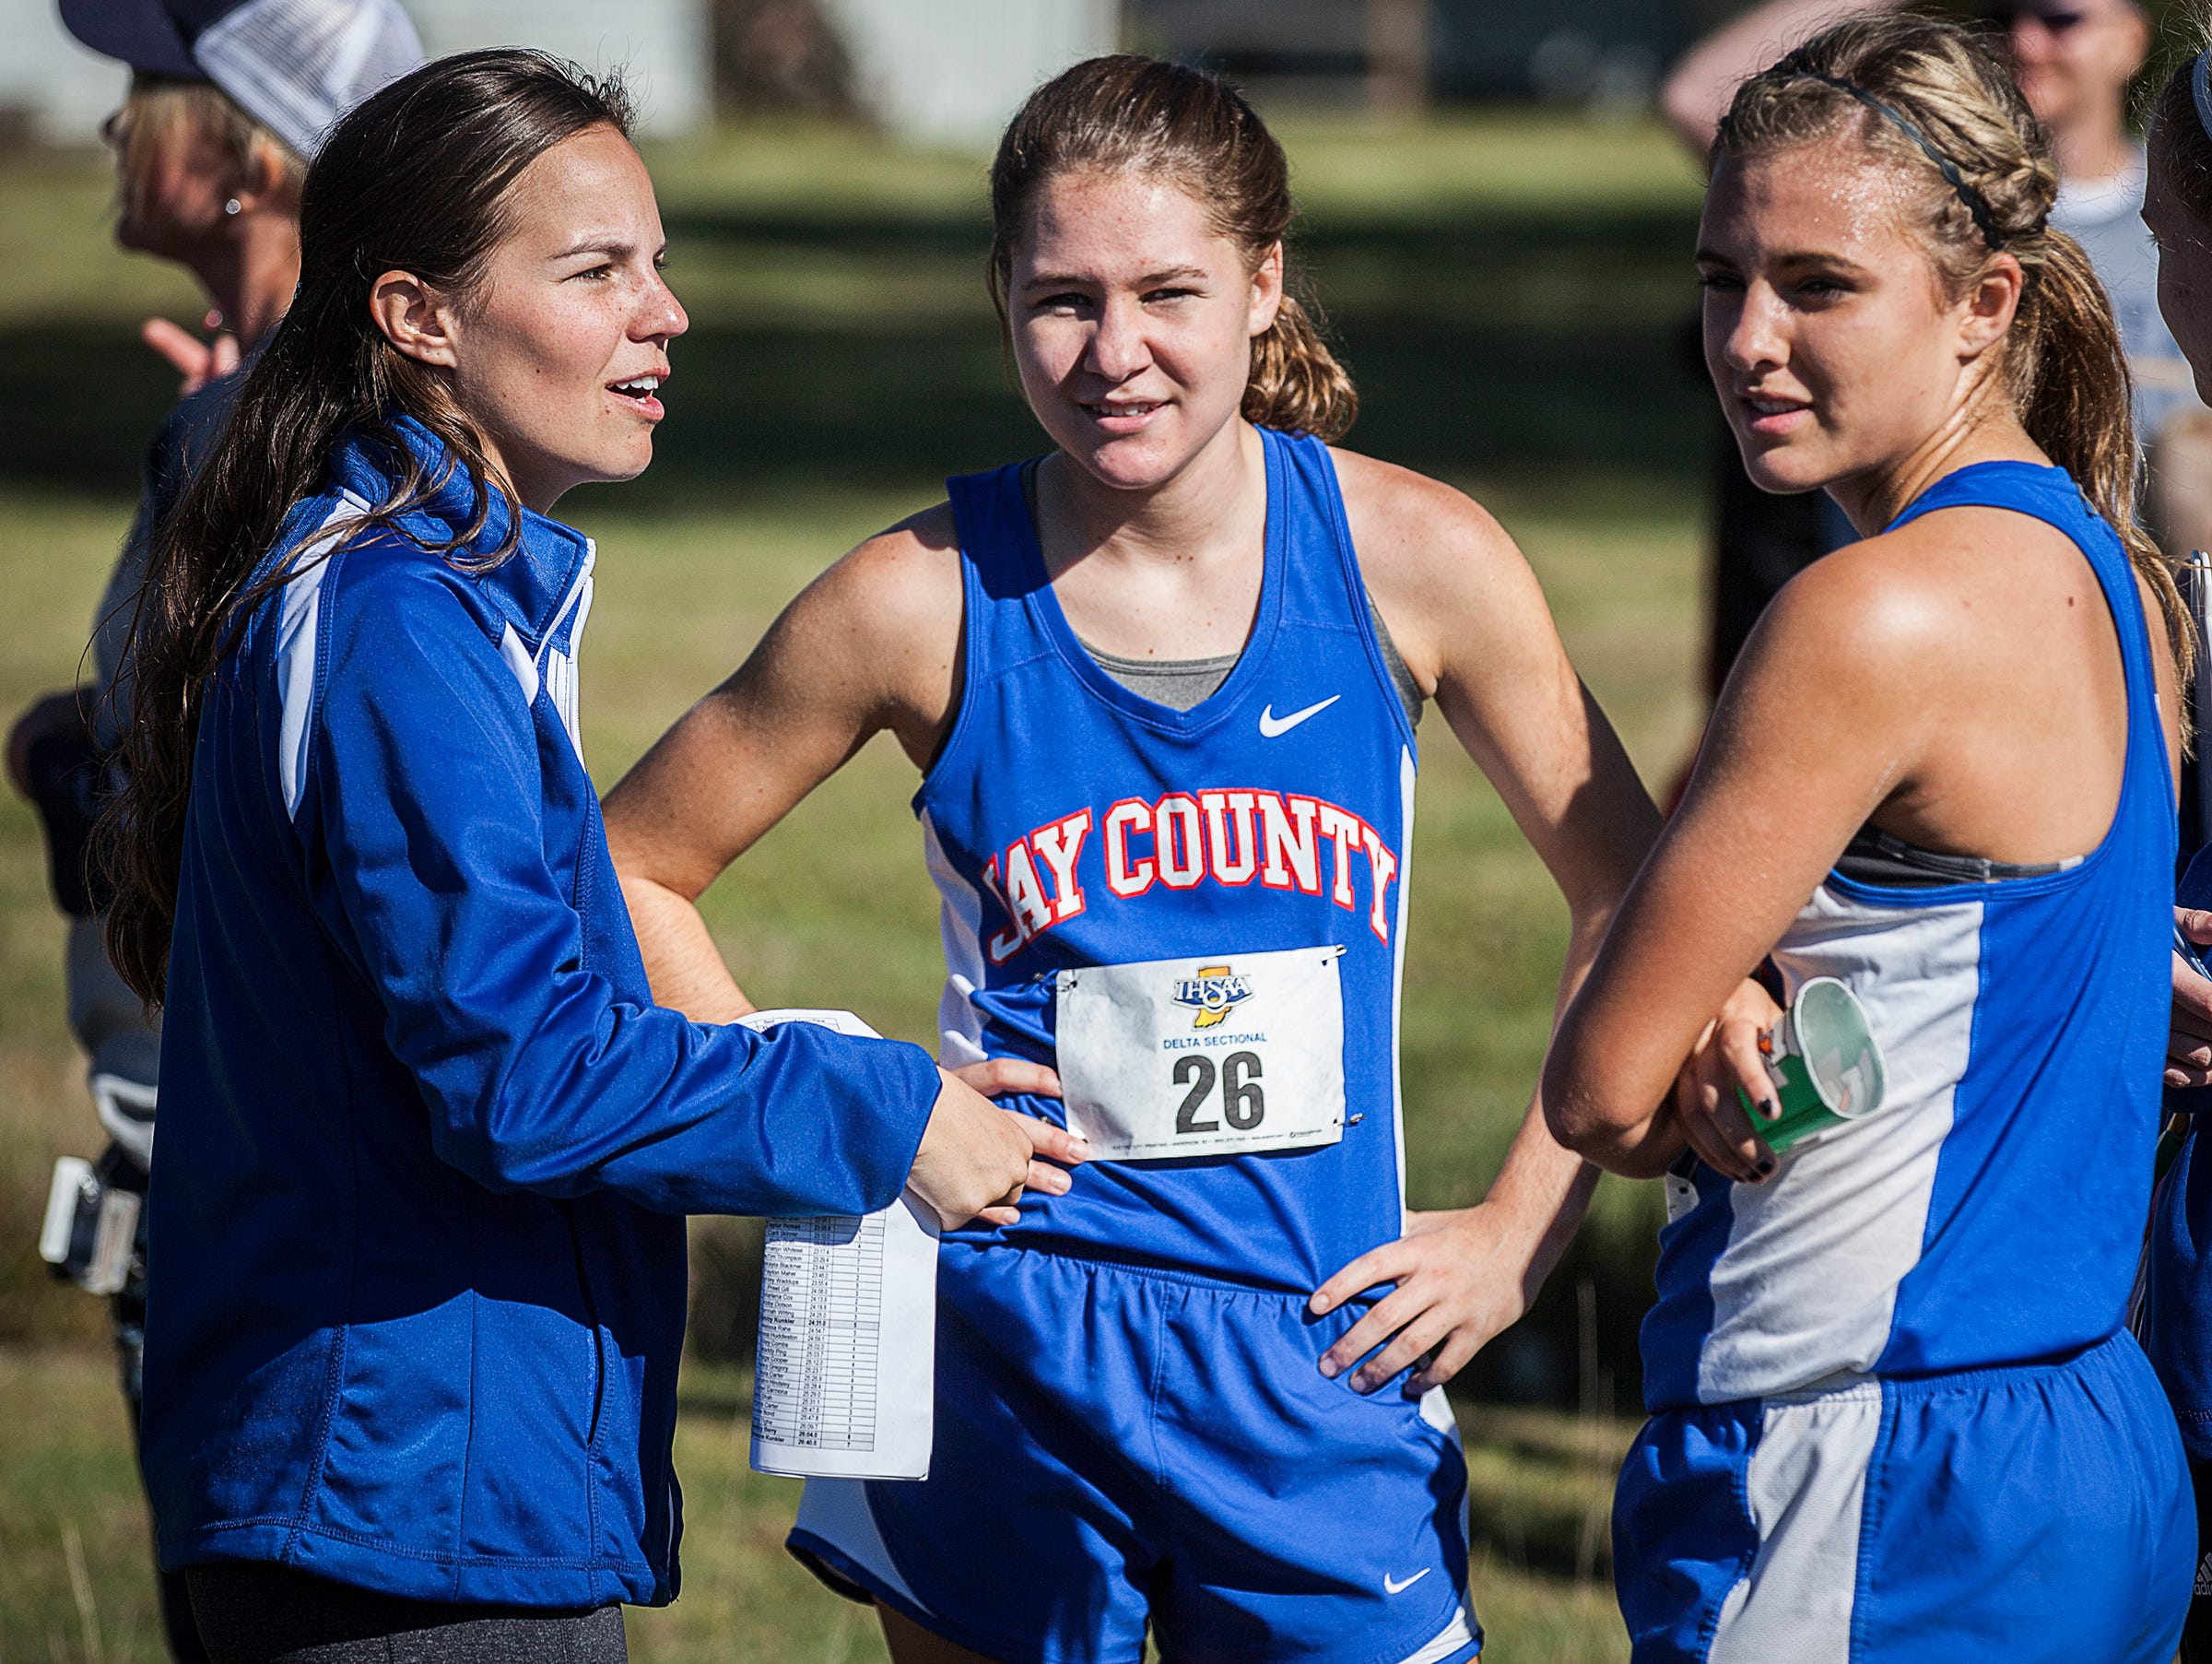 Coach Leah Wellman chats with her team after competing in the cross country sectional at the Sportsplex in Muncie on Saturday, Oct. 10, 2015.